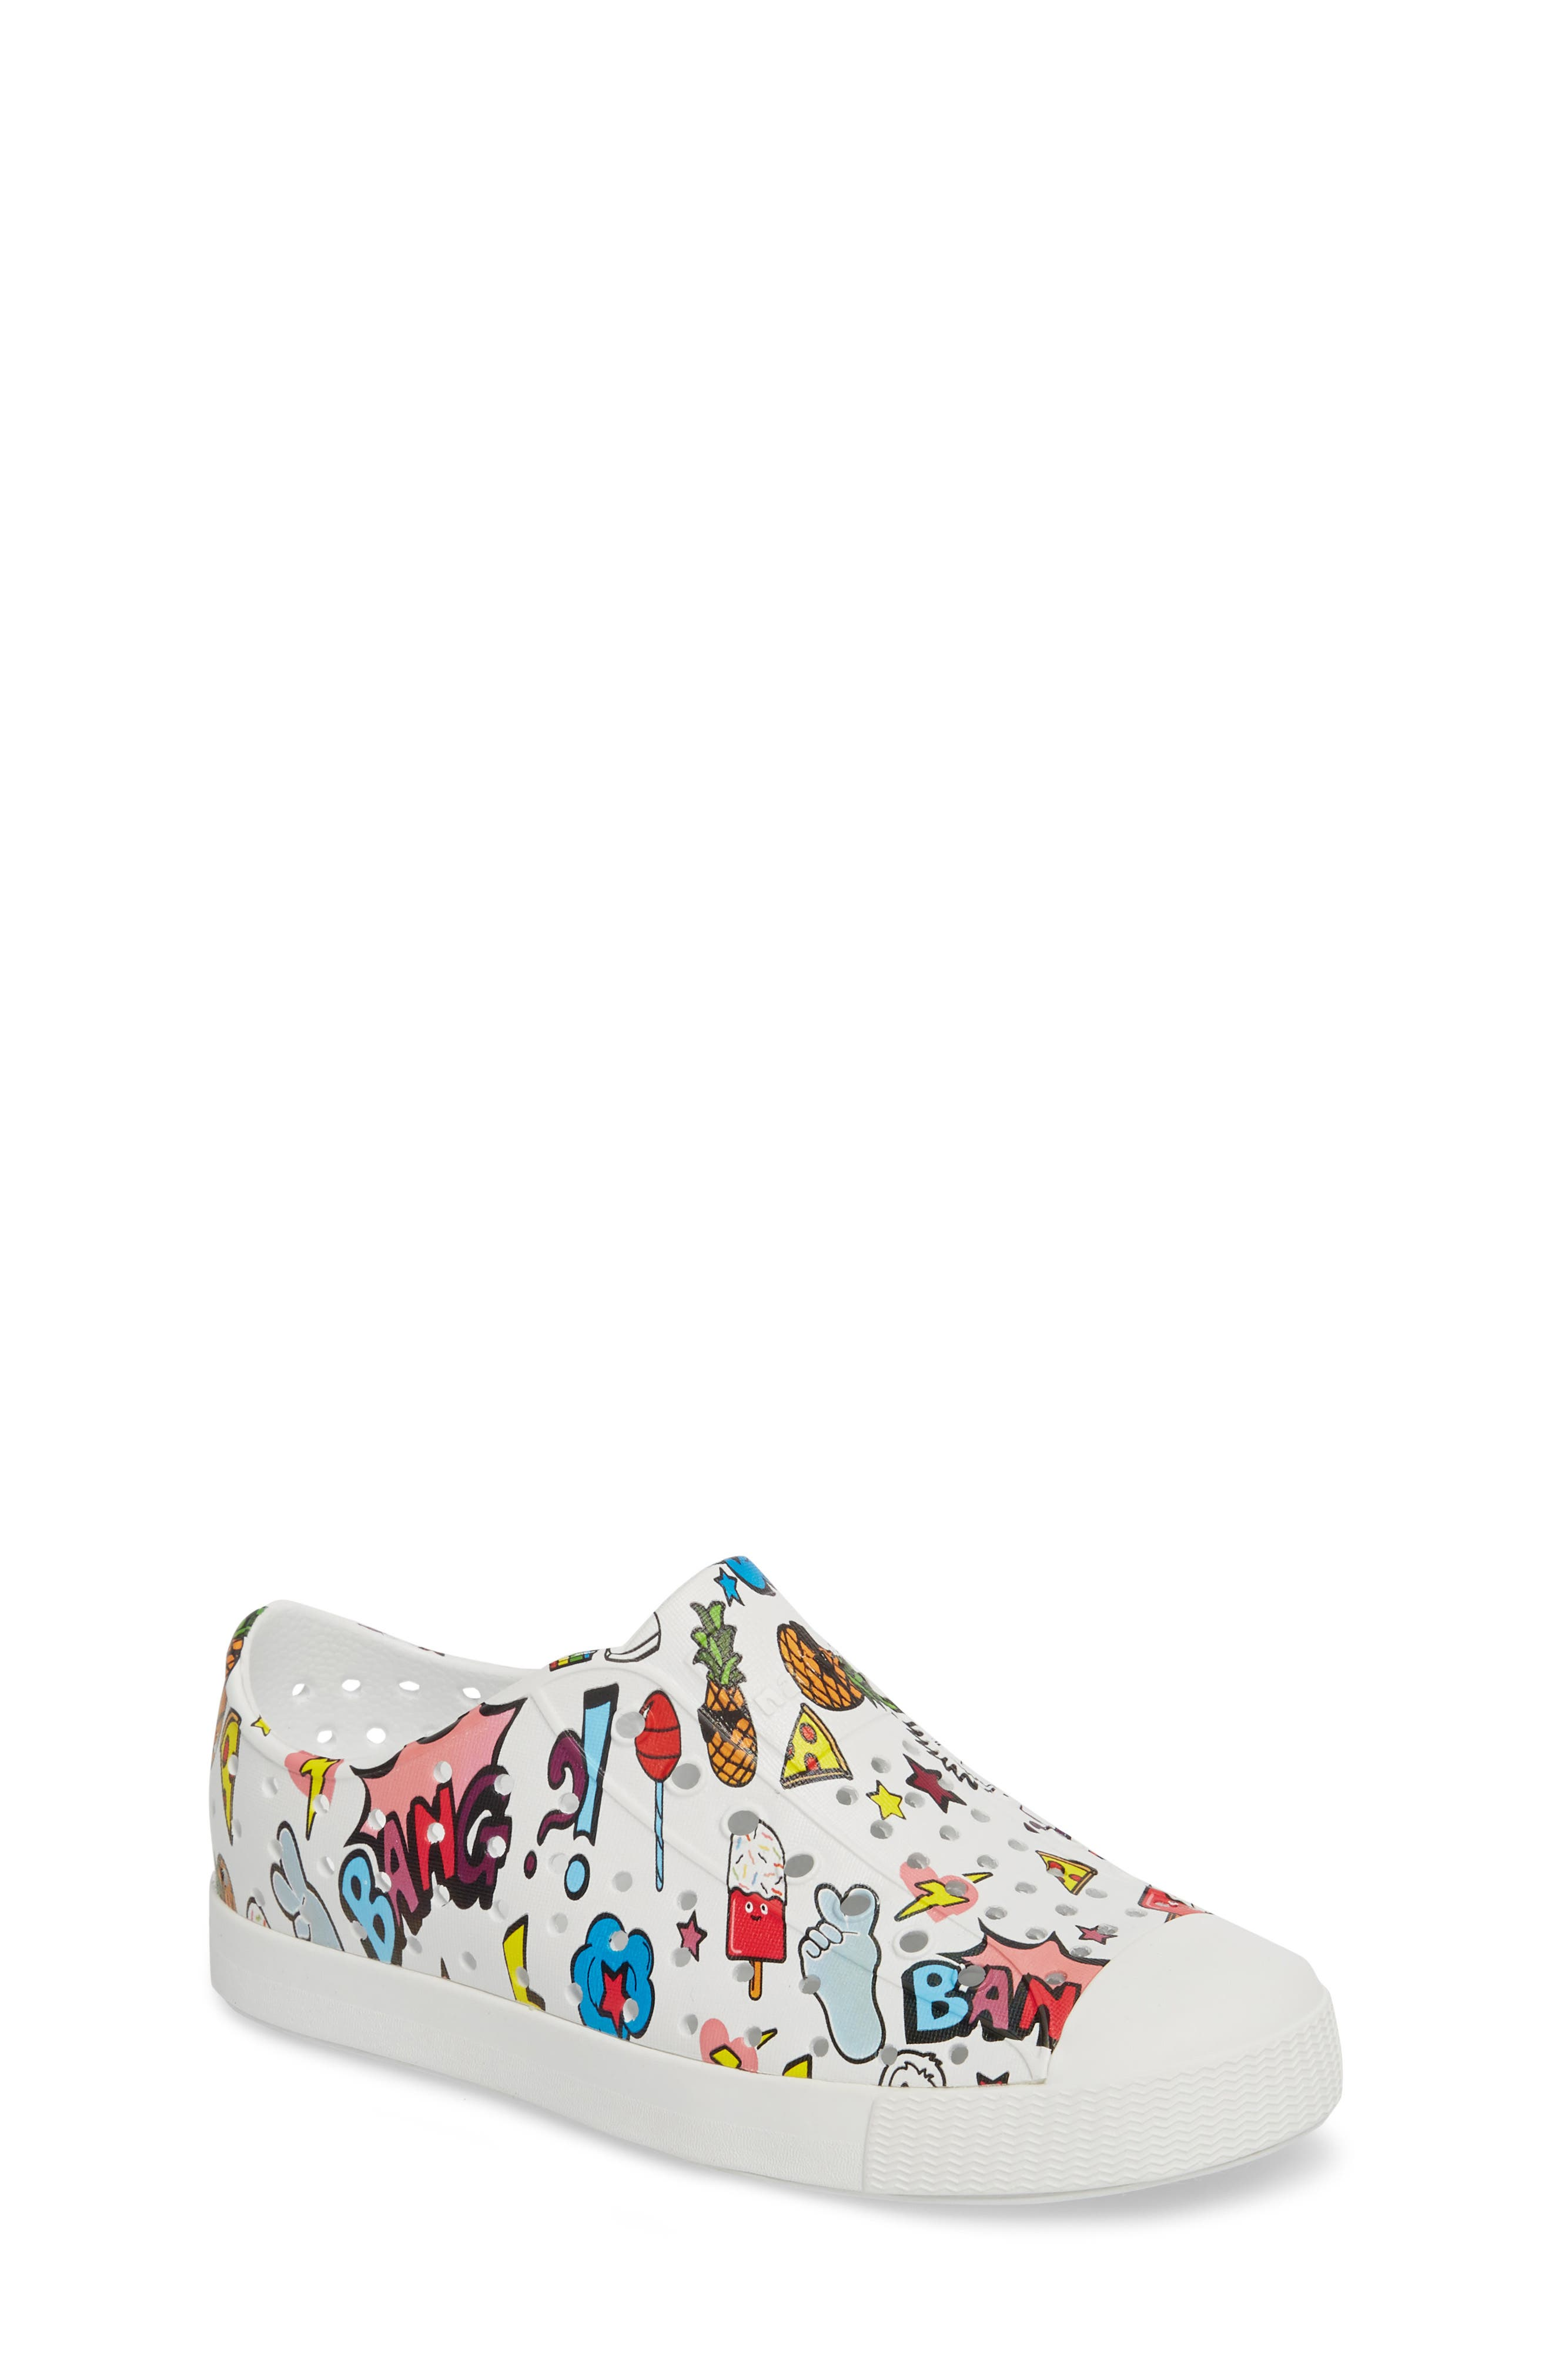 Jefferson Water Friendly Perforated Slip-On,                             Main thumbnail 1, color,                             Shell White/ Sticker